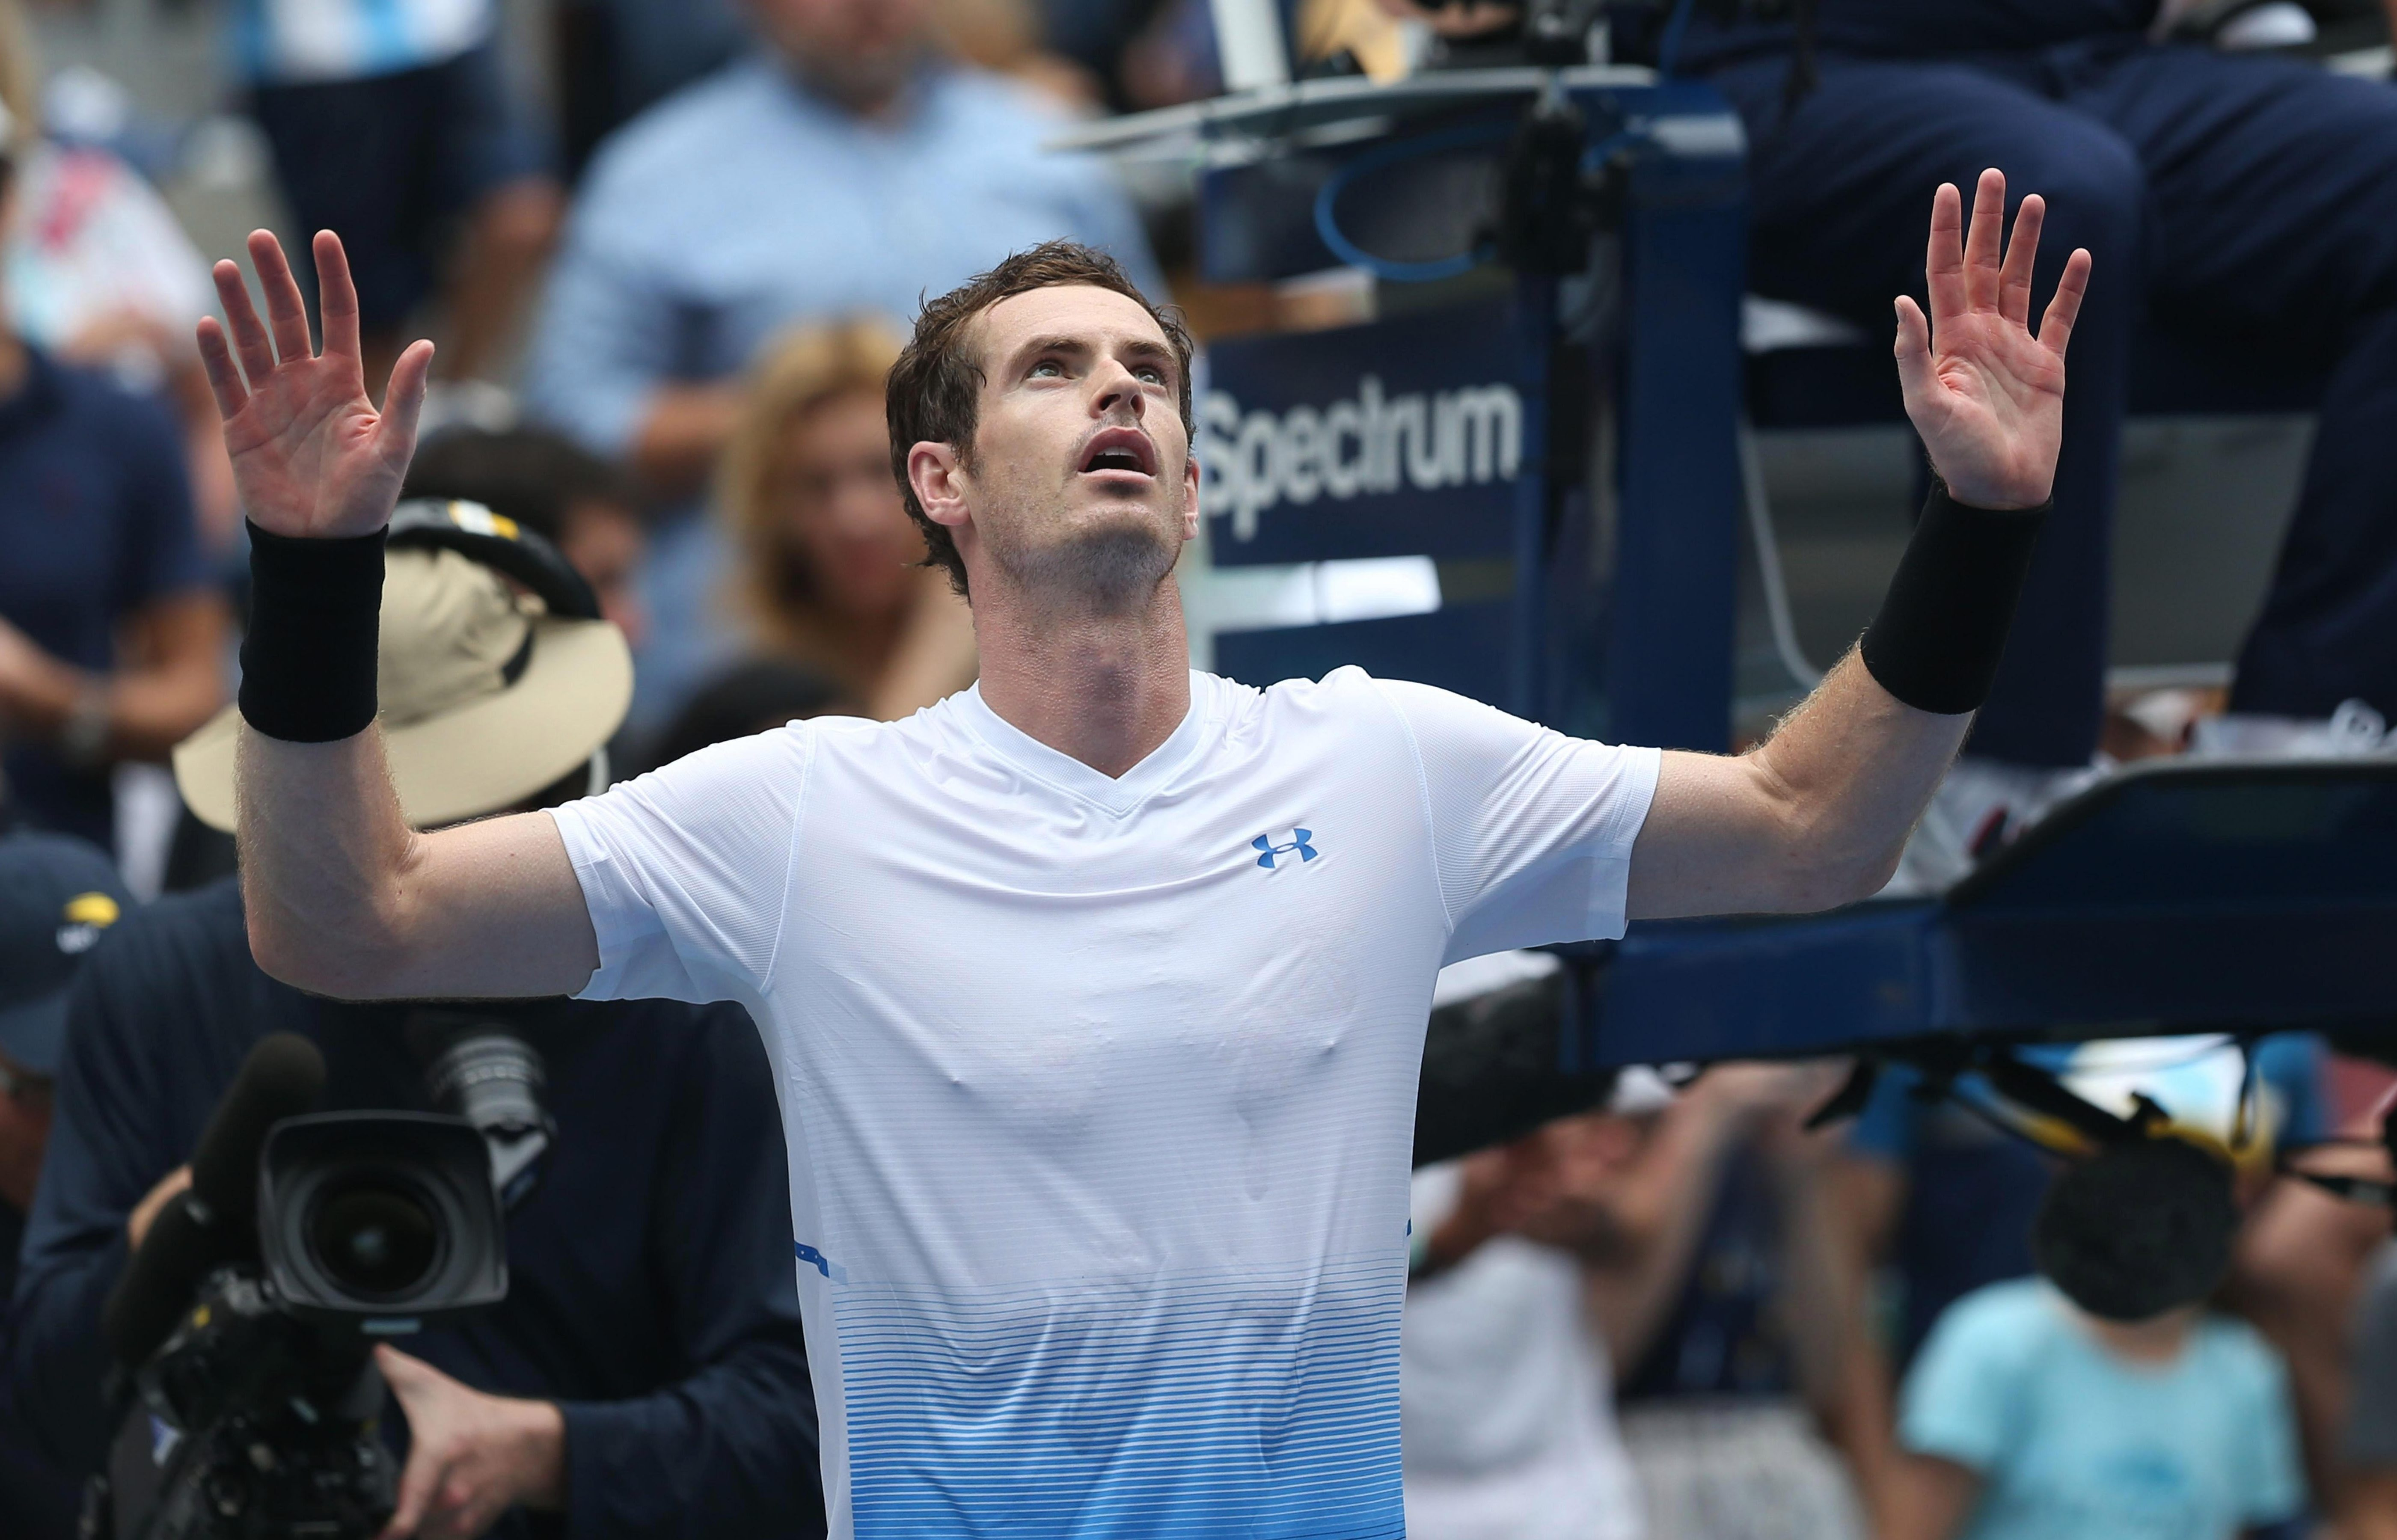 Andy Murray is battling the stifling US Open heat with a special diet that includes lots of sushi, bacon and eggs